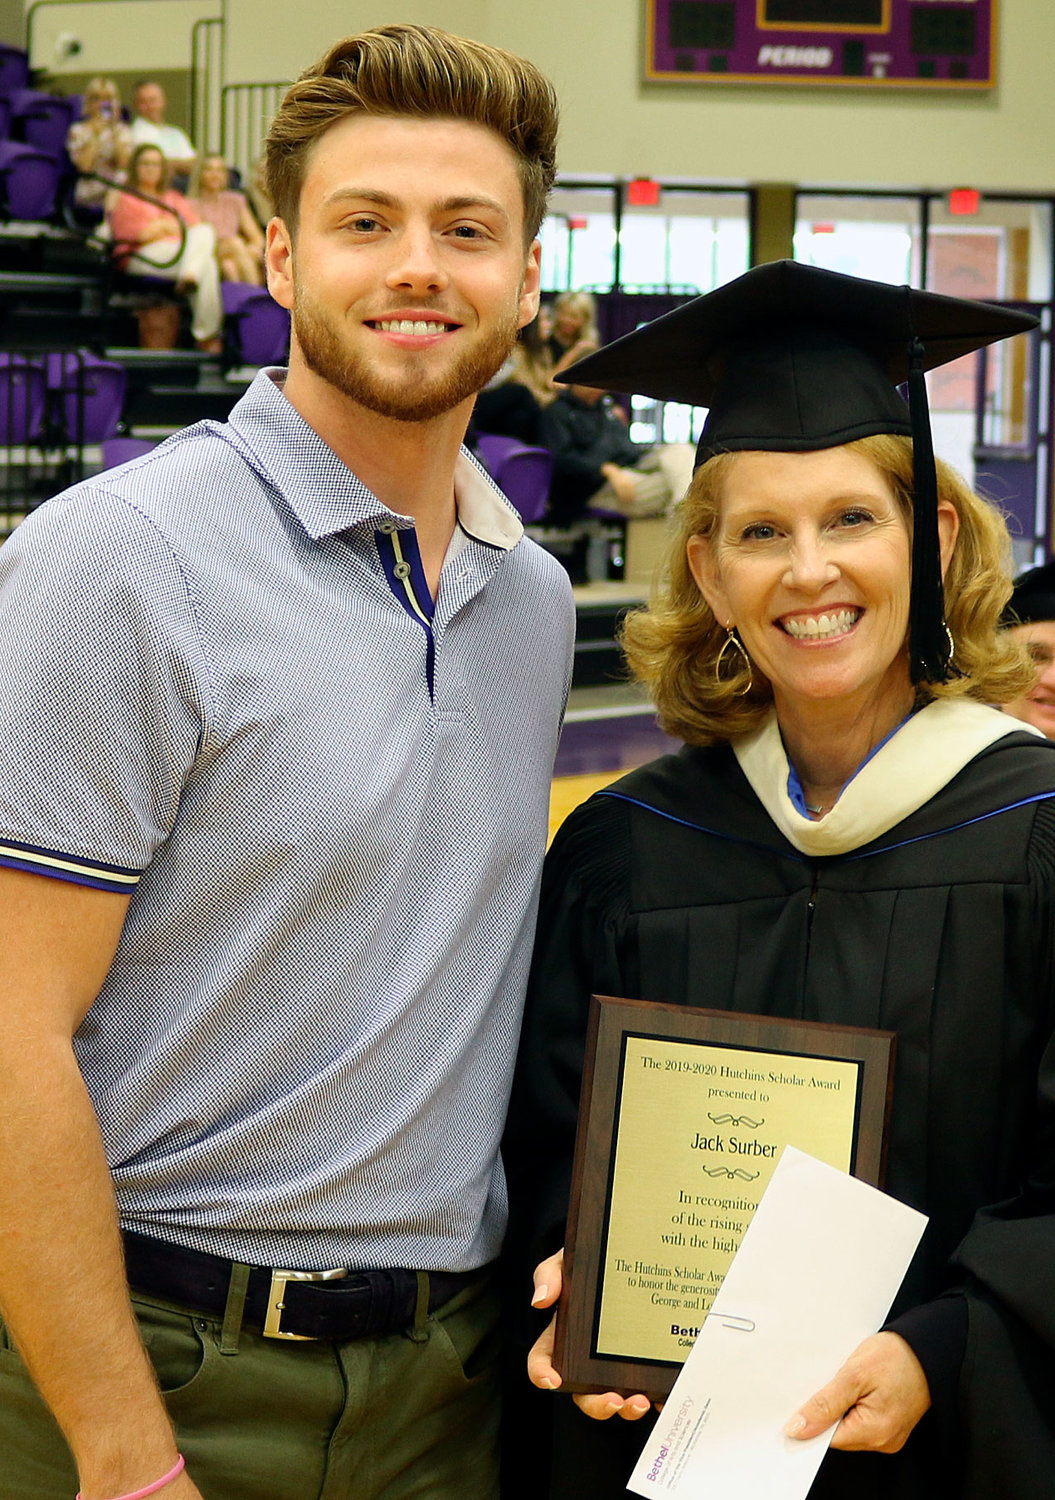 Jack Surber, a senior at Bethel University and Cindy Mallard, Vice President of the College of Arts and Sciences.